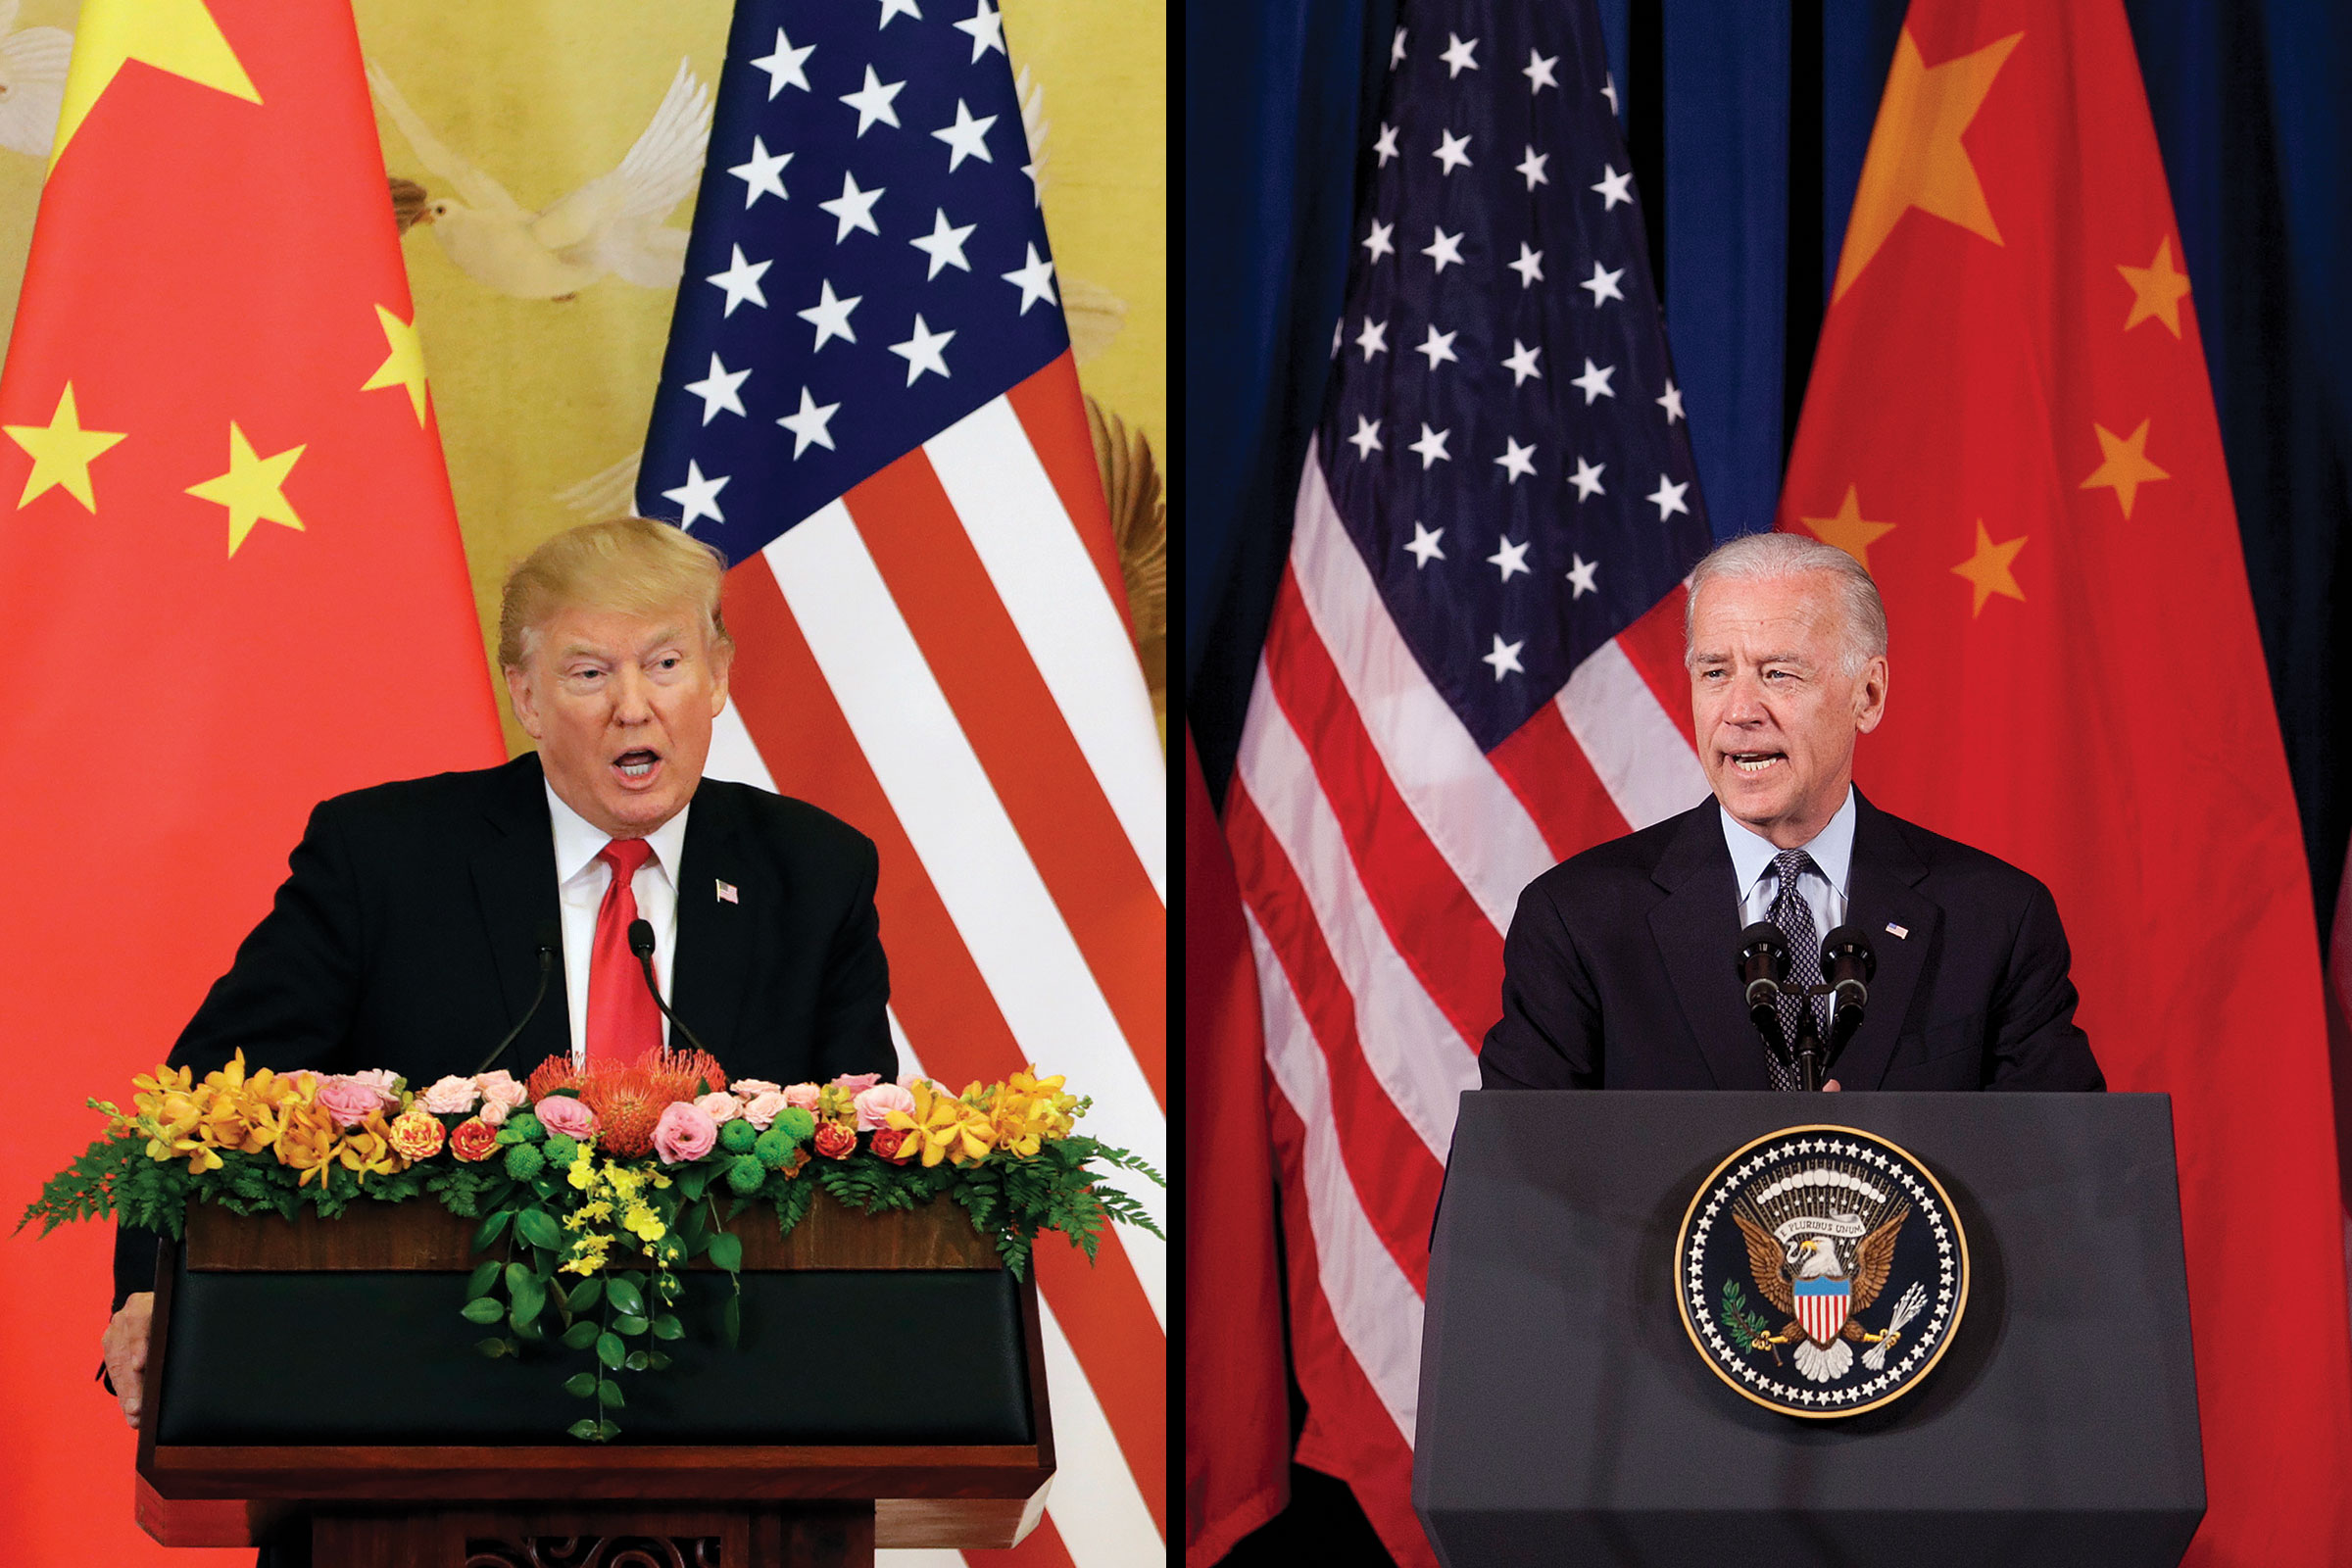 President Donald Trump during a news conference at the Great Hall of the People in Beijing, China, Nov. 9, 2017; Then Vice President Joe Biden during the opening ceremony of the U.S.-China Strategic & Economic Dialogue in Washington, May 9, 2011